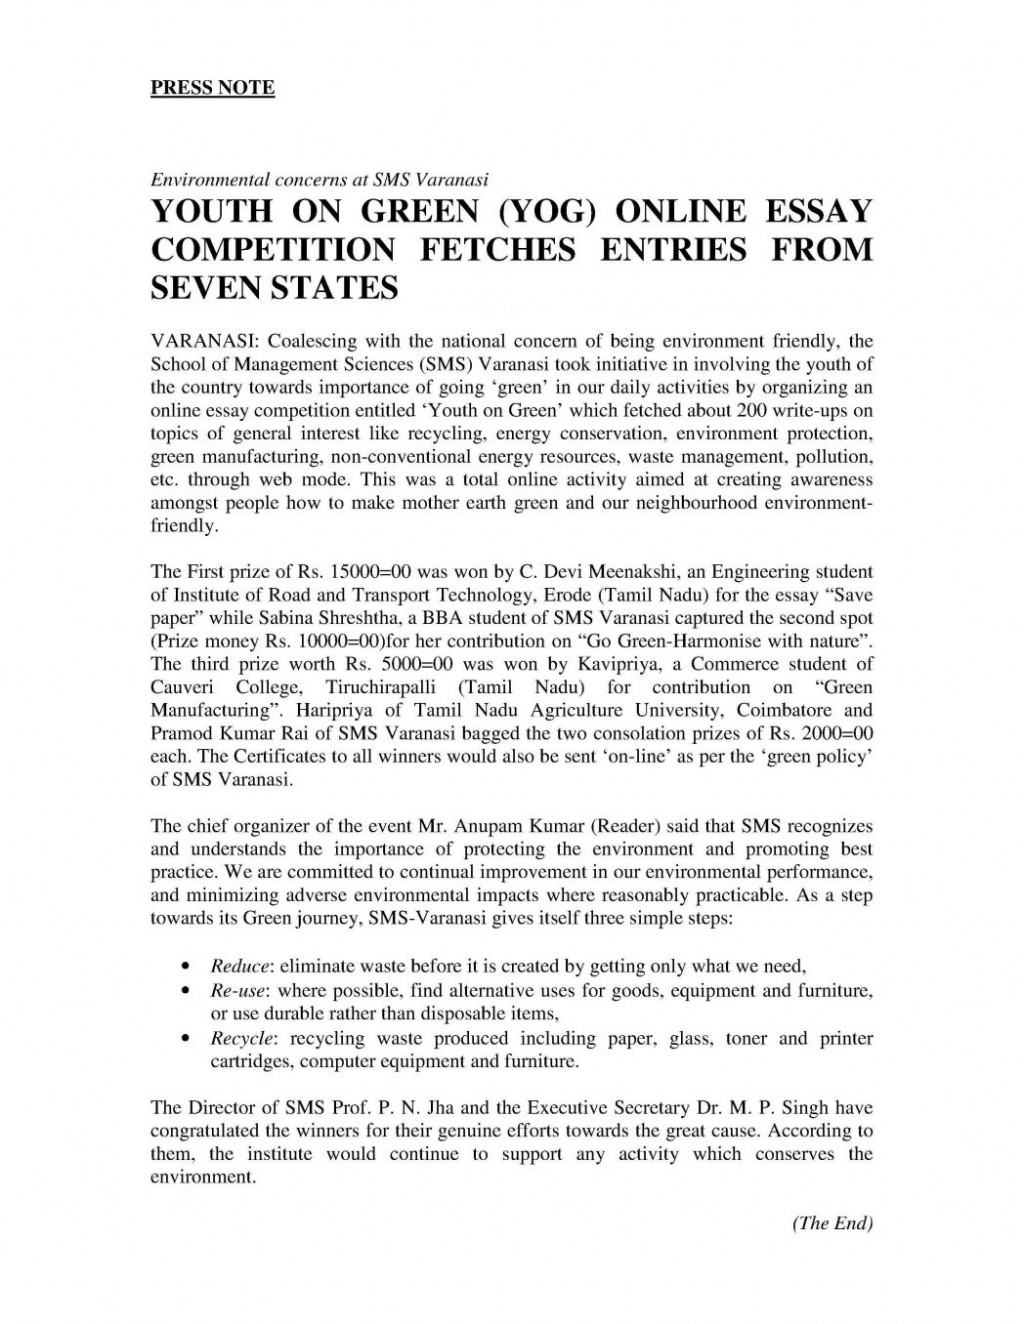 020 Best Essays For College Essay On Good Habits How Tot Application Online Yog Press Re About Yourself Examples Your Background Failure Prompt Off Hook 1048x1356 Example Amazing To Start An With A Quote Analysis Book Large